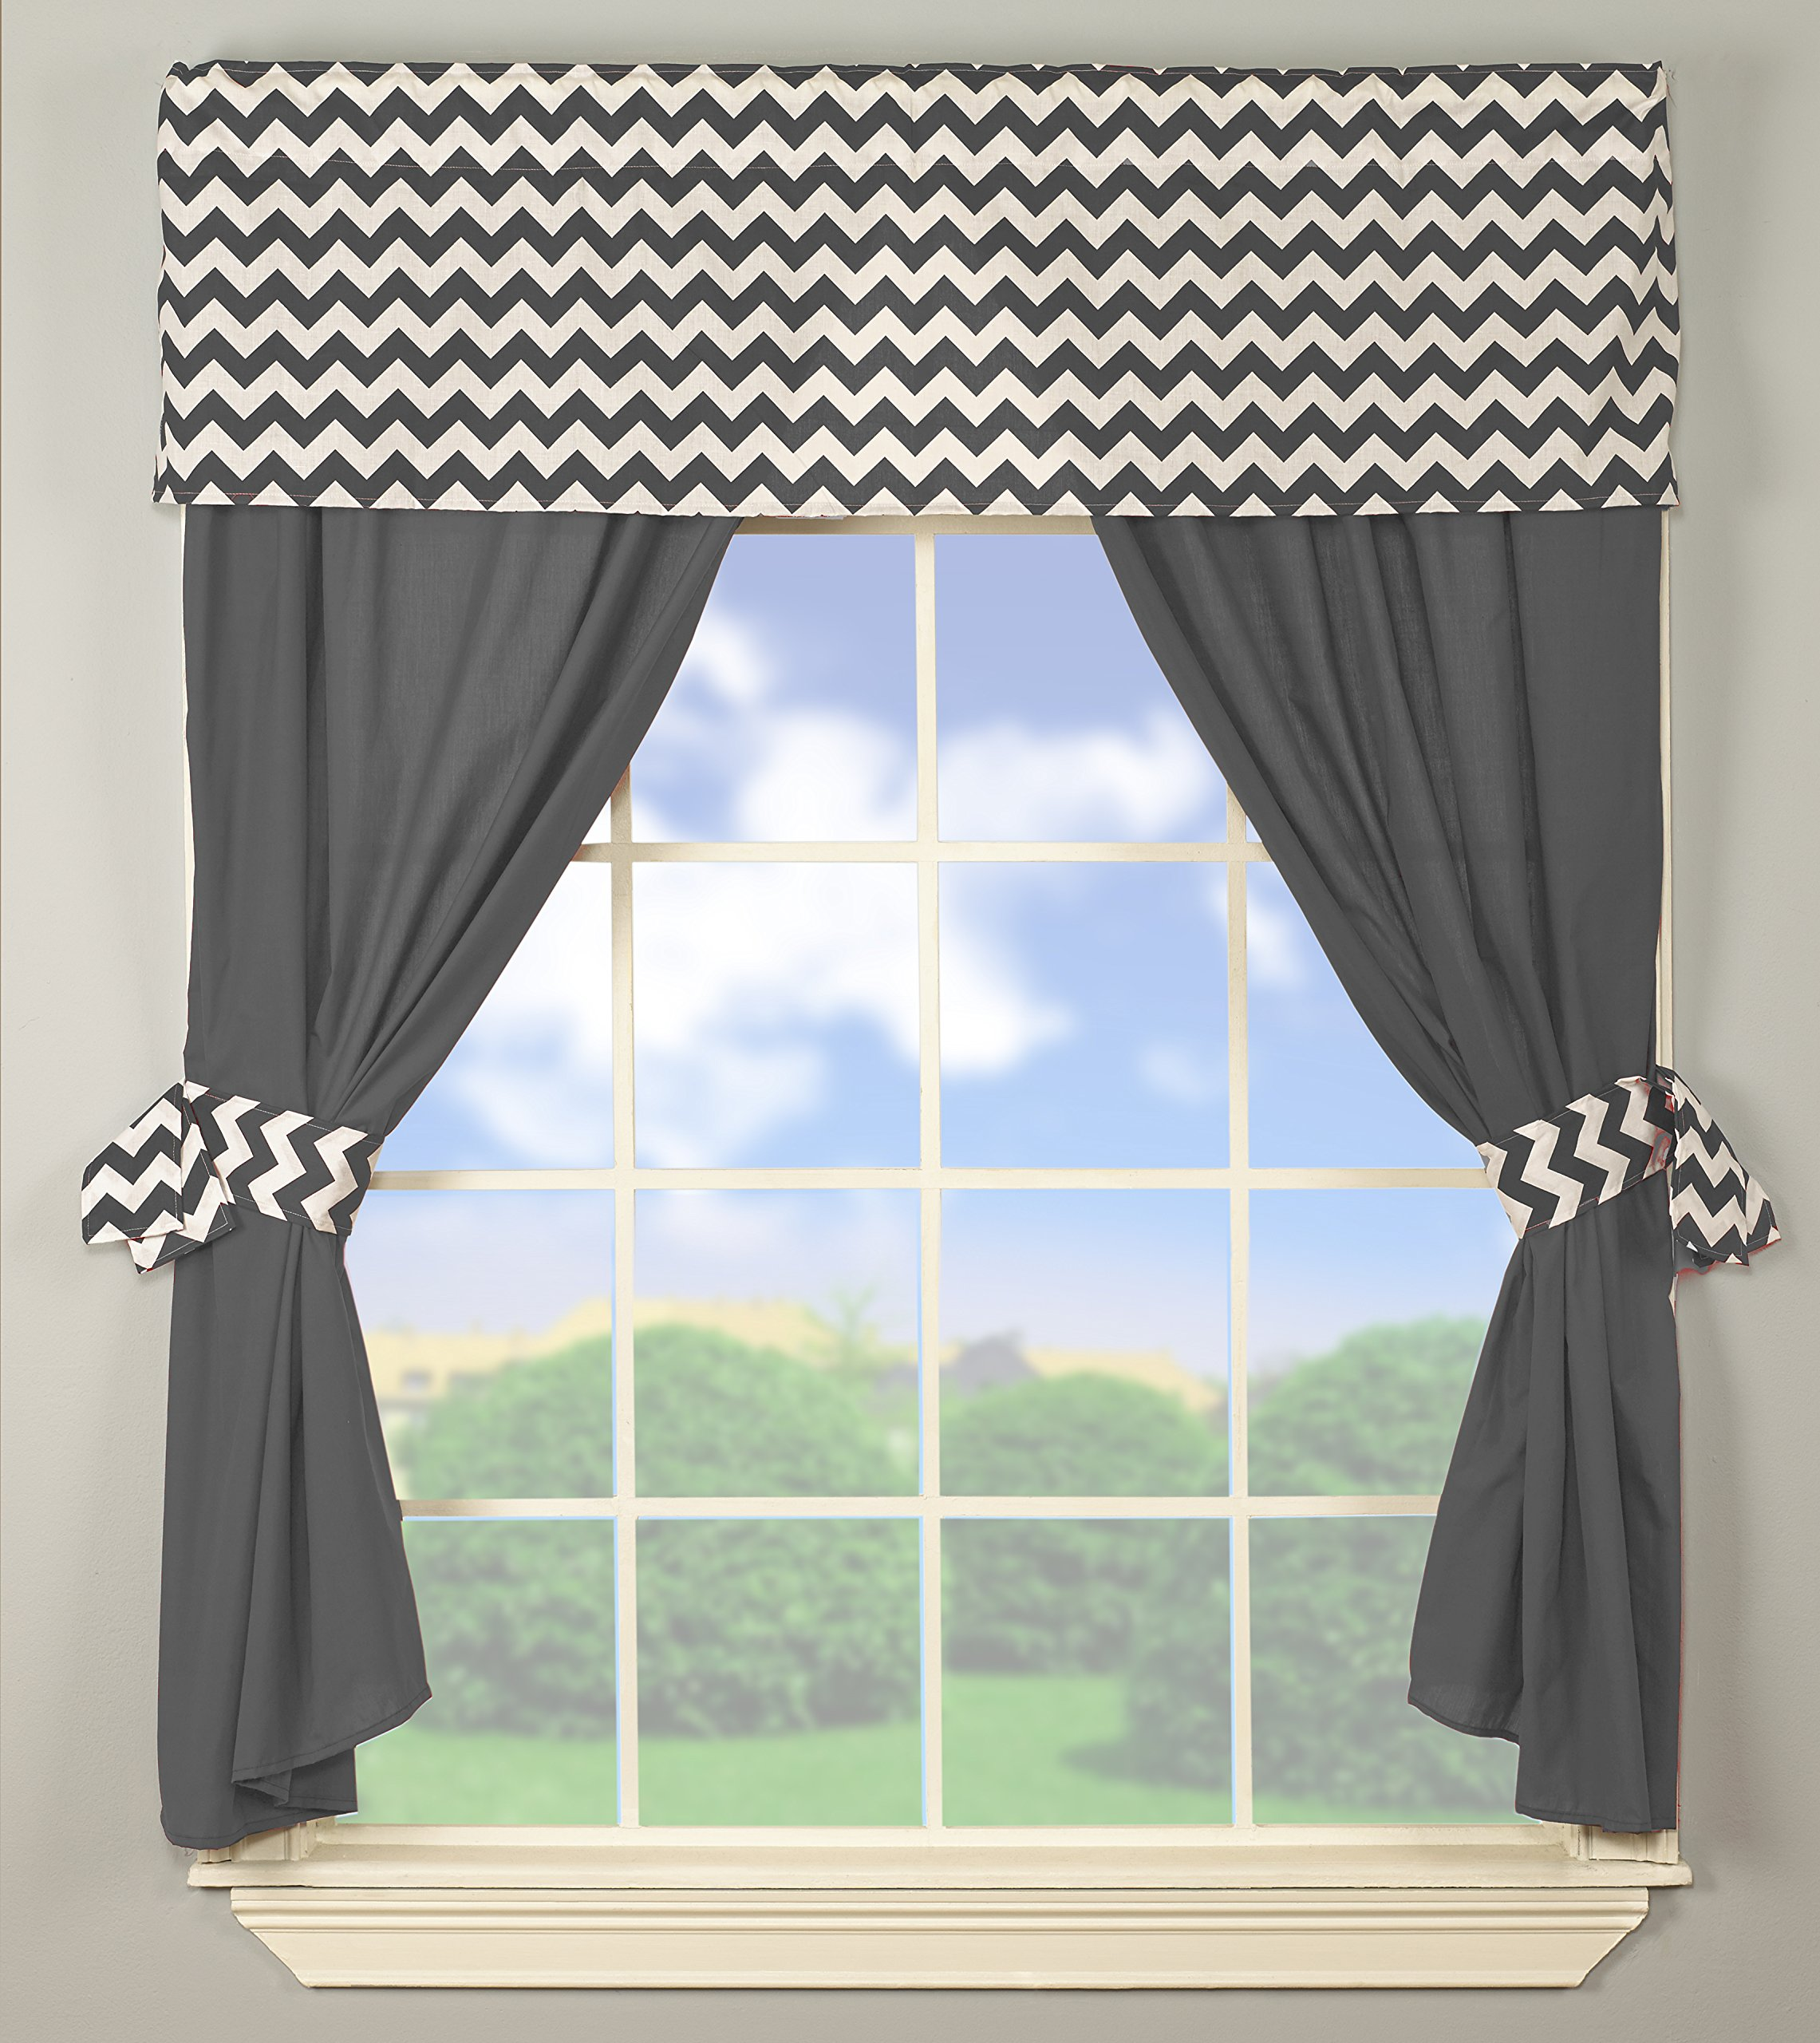 Baby Doll Bedding Chevron Window Valance and Curtain Set, Grey by BabyDoll Bedding